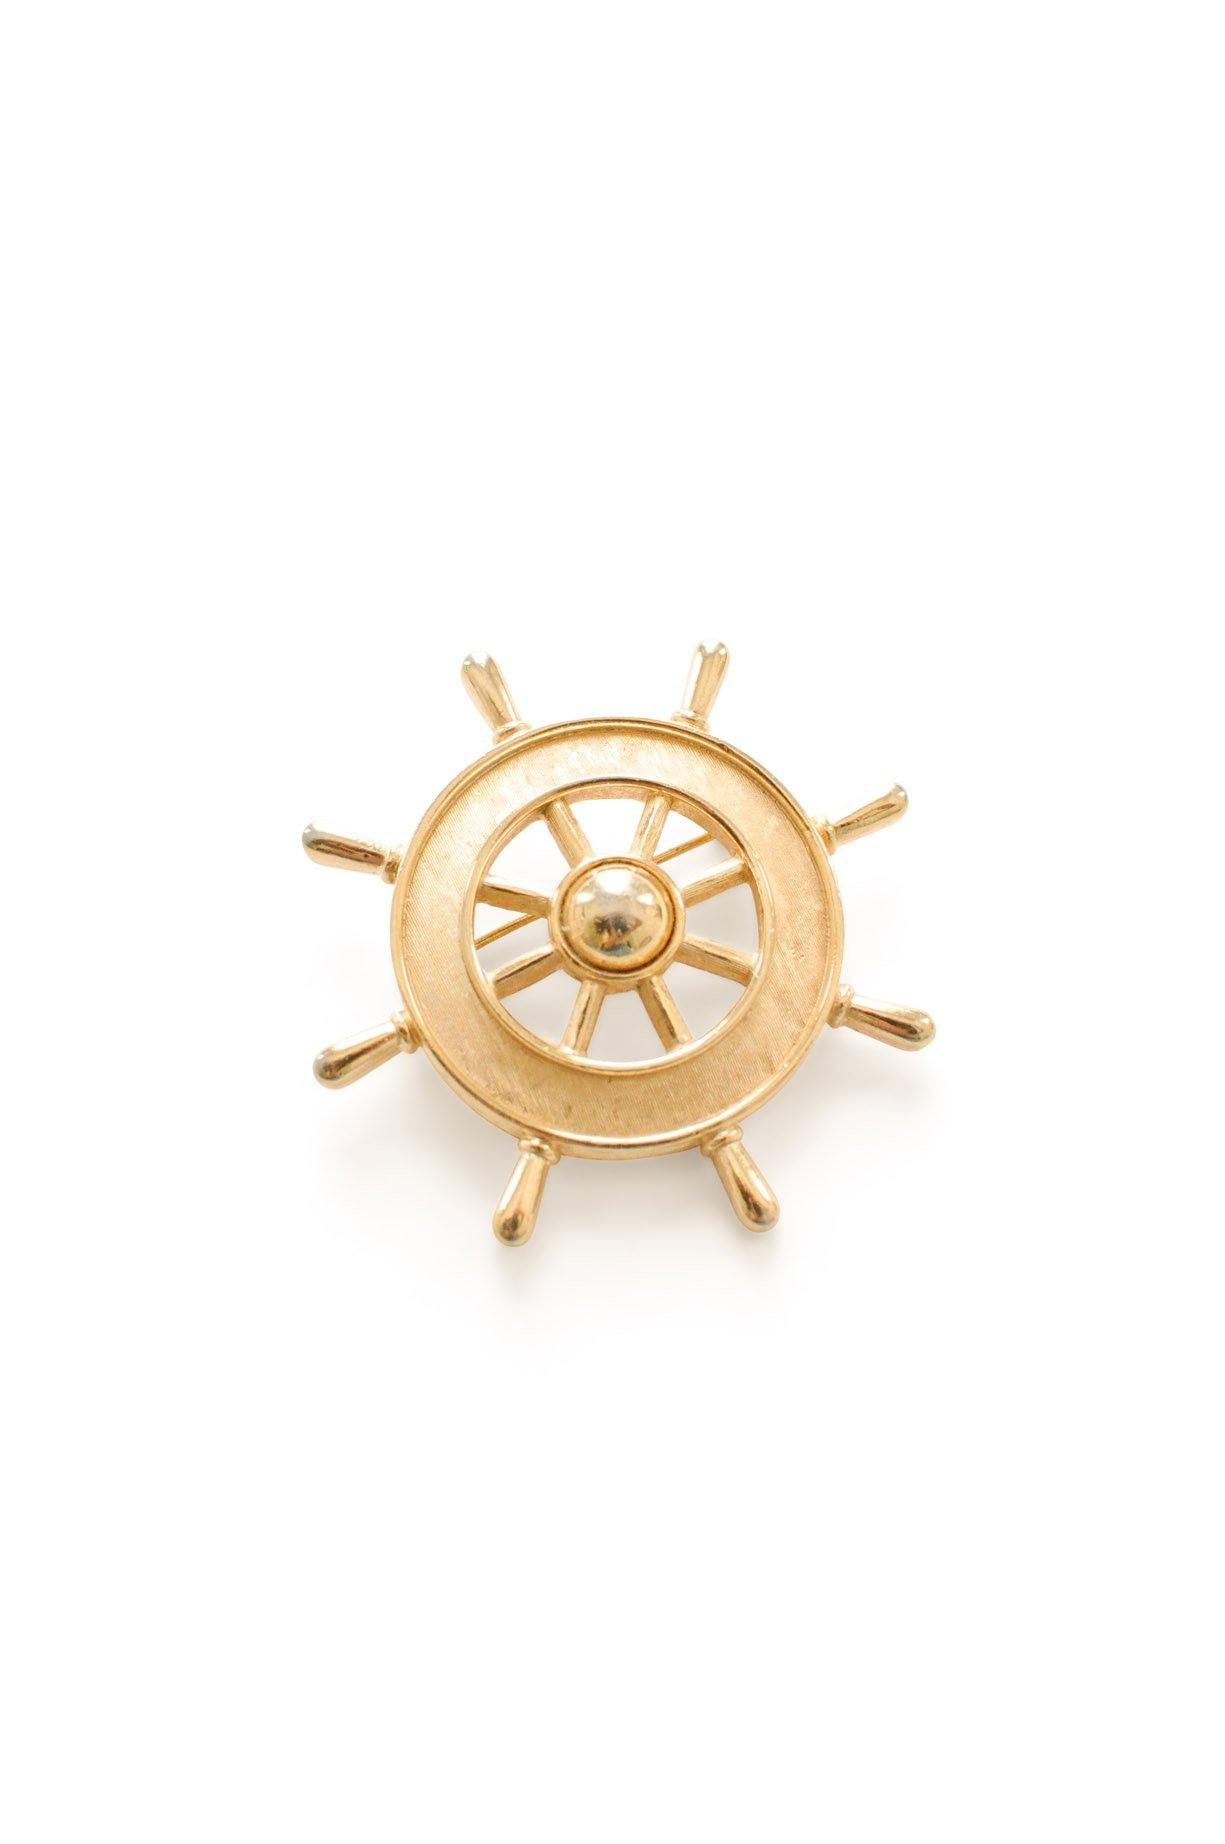 Gold Rudder Brooch